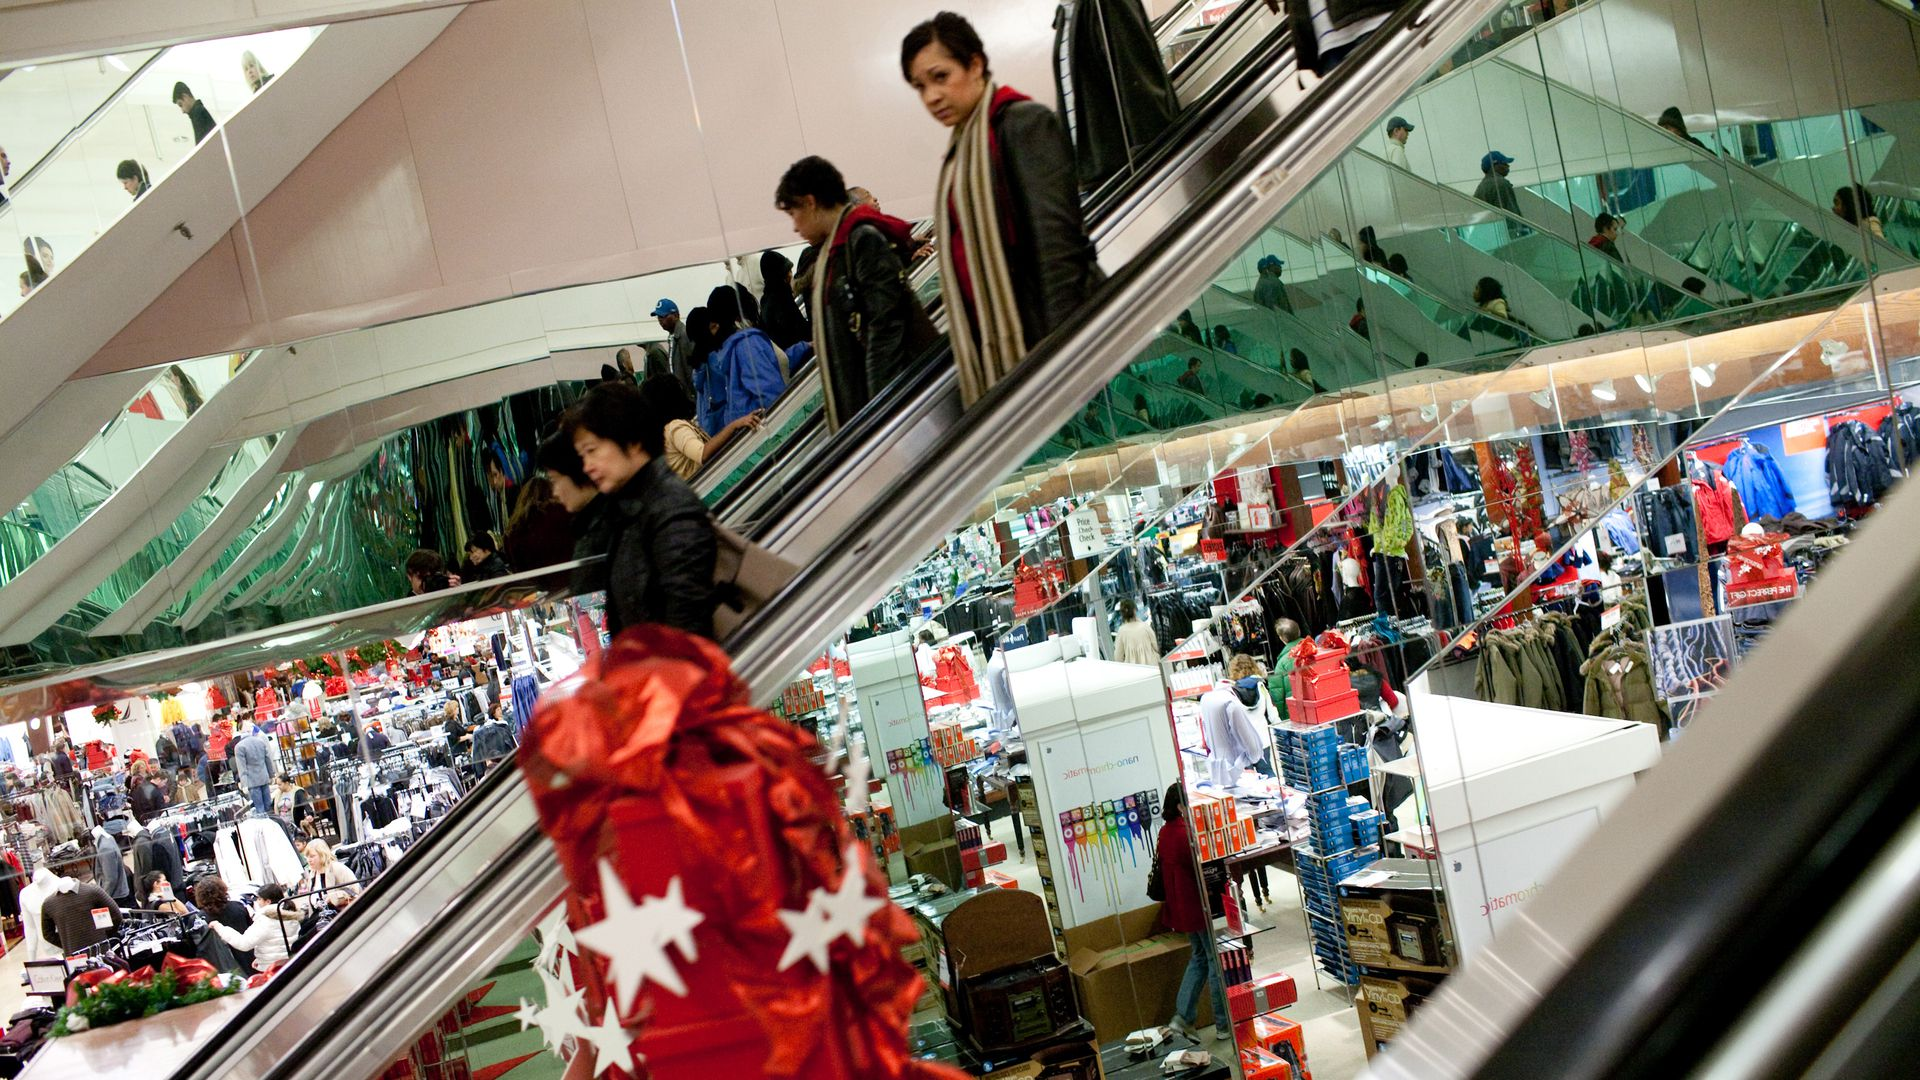 Last-minute shoppers are reflected in the side of an escalator in a Macy's department store at Tysons Corner Center, a mall in suburban Washington, on Christmas Eve on December 24, 2008